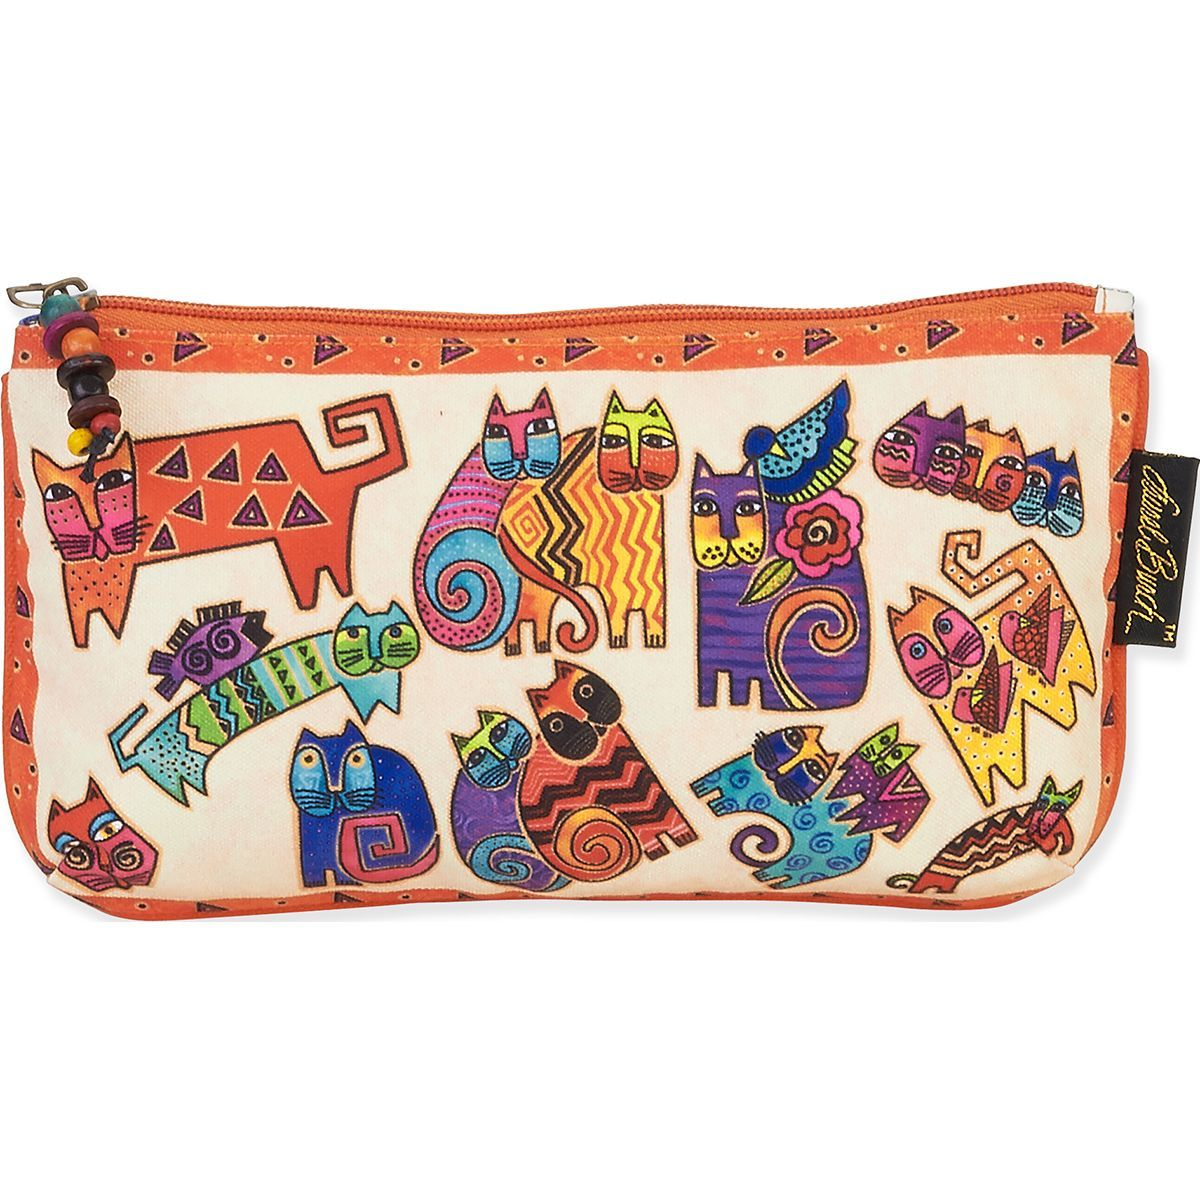 Laurel Burch Cosmetic Bag Set 3 Pkg-Karly s Cats   Products ... 19d48f655b